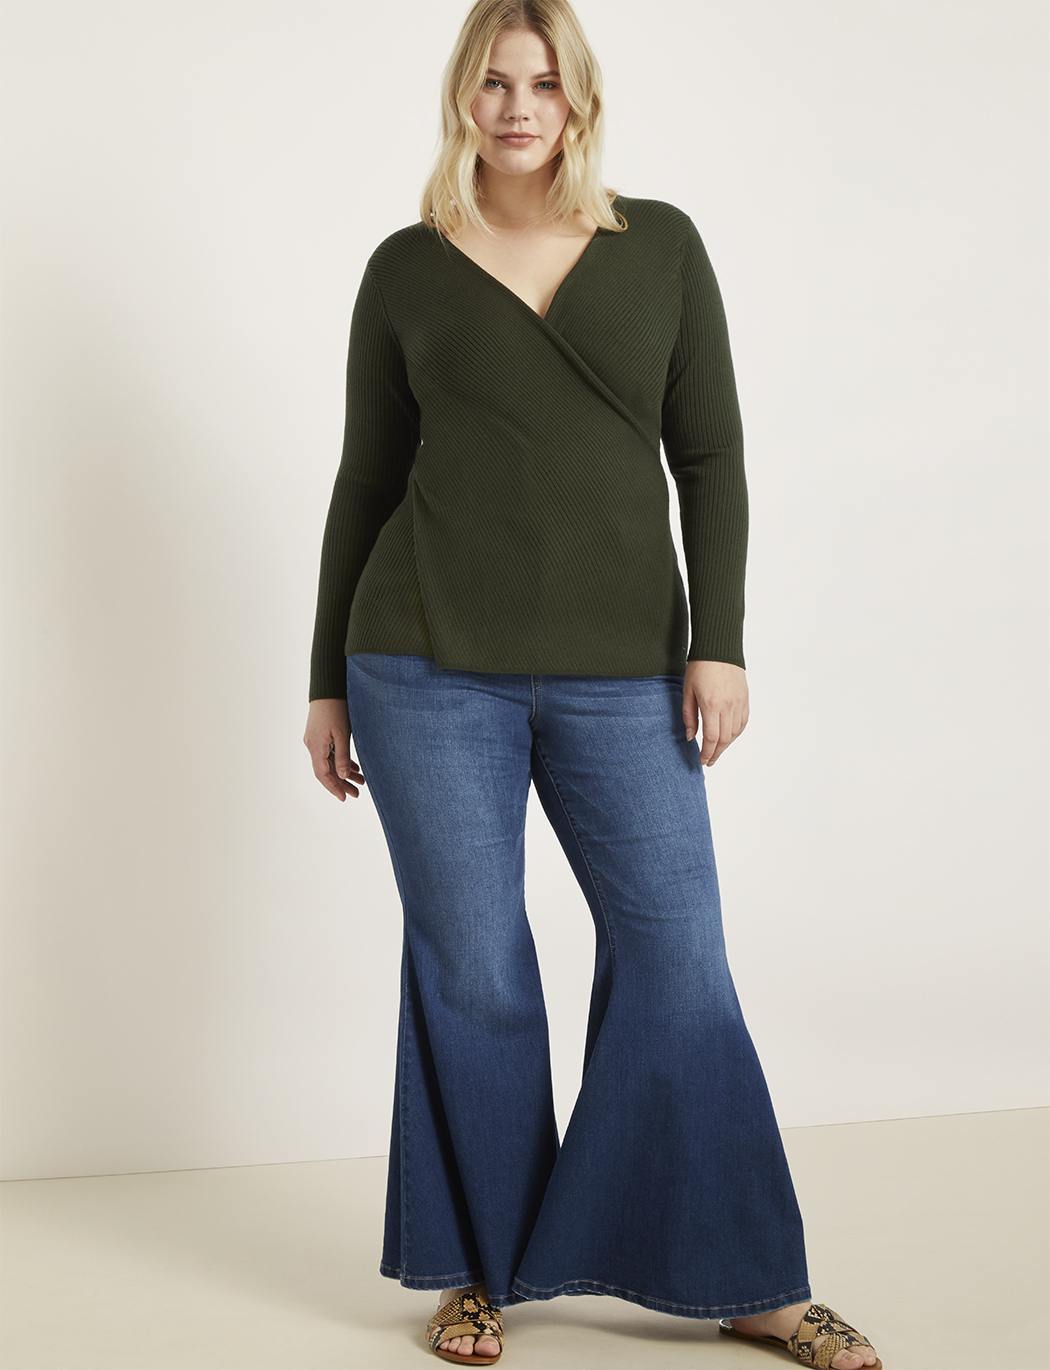 Ribbed Cross Front Sweater